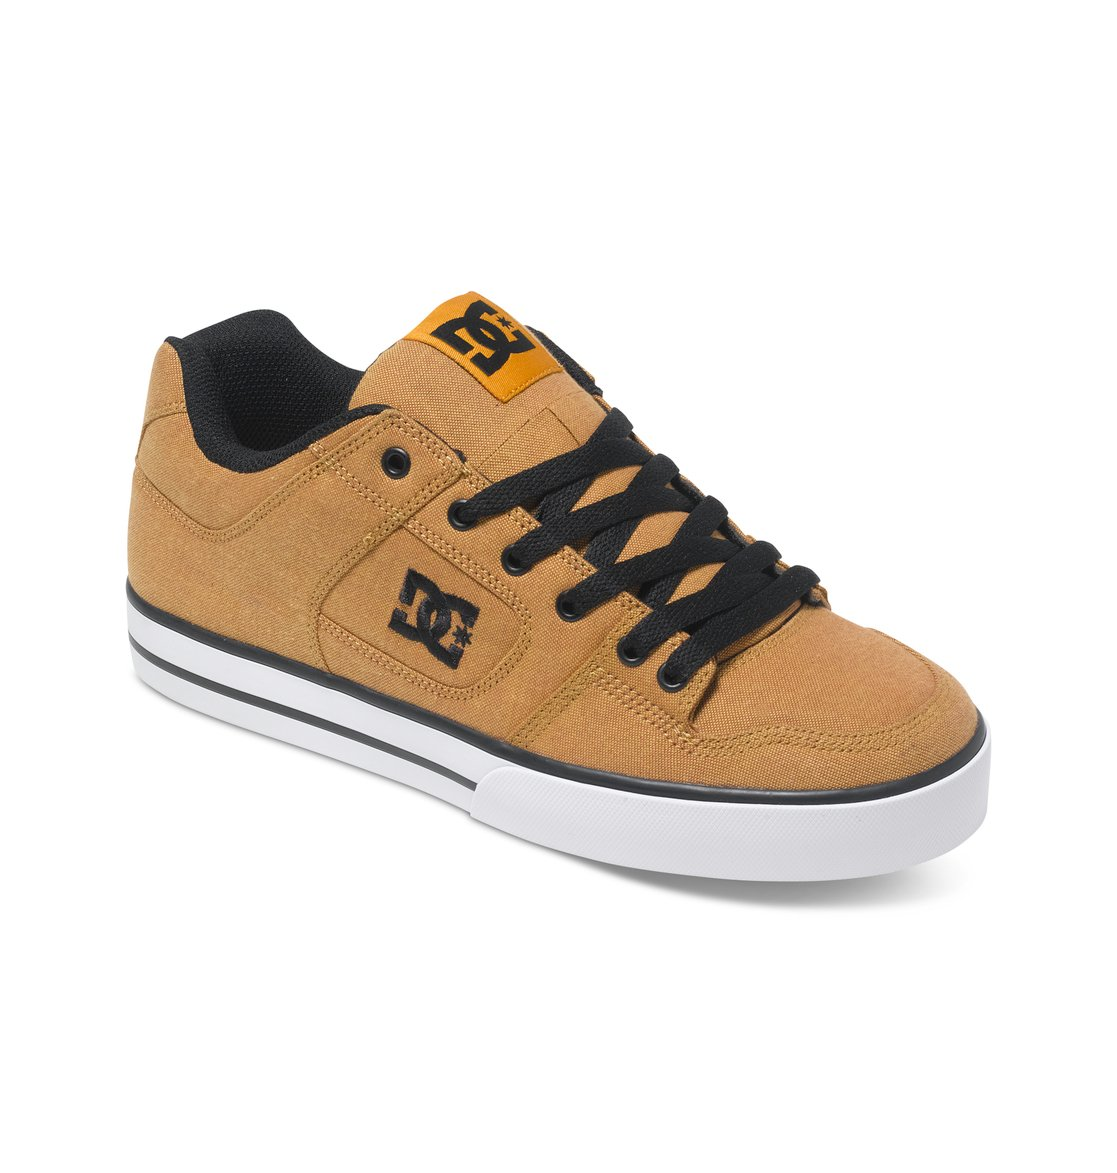 Product Description Dc's popular net skate shoe, built to protect the foot with added.